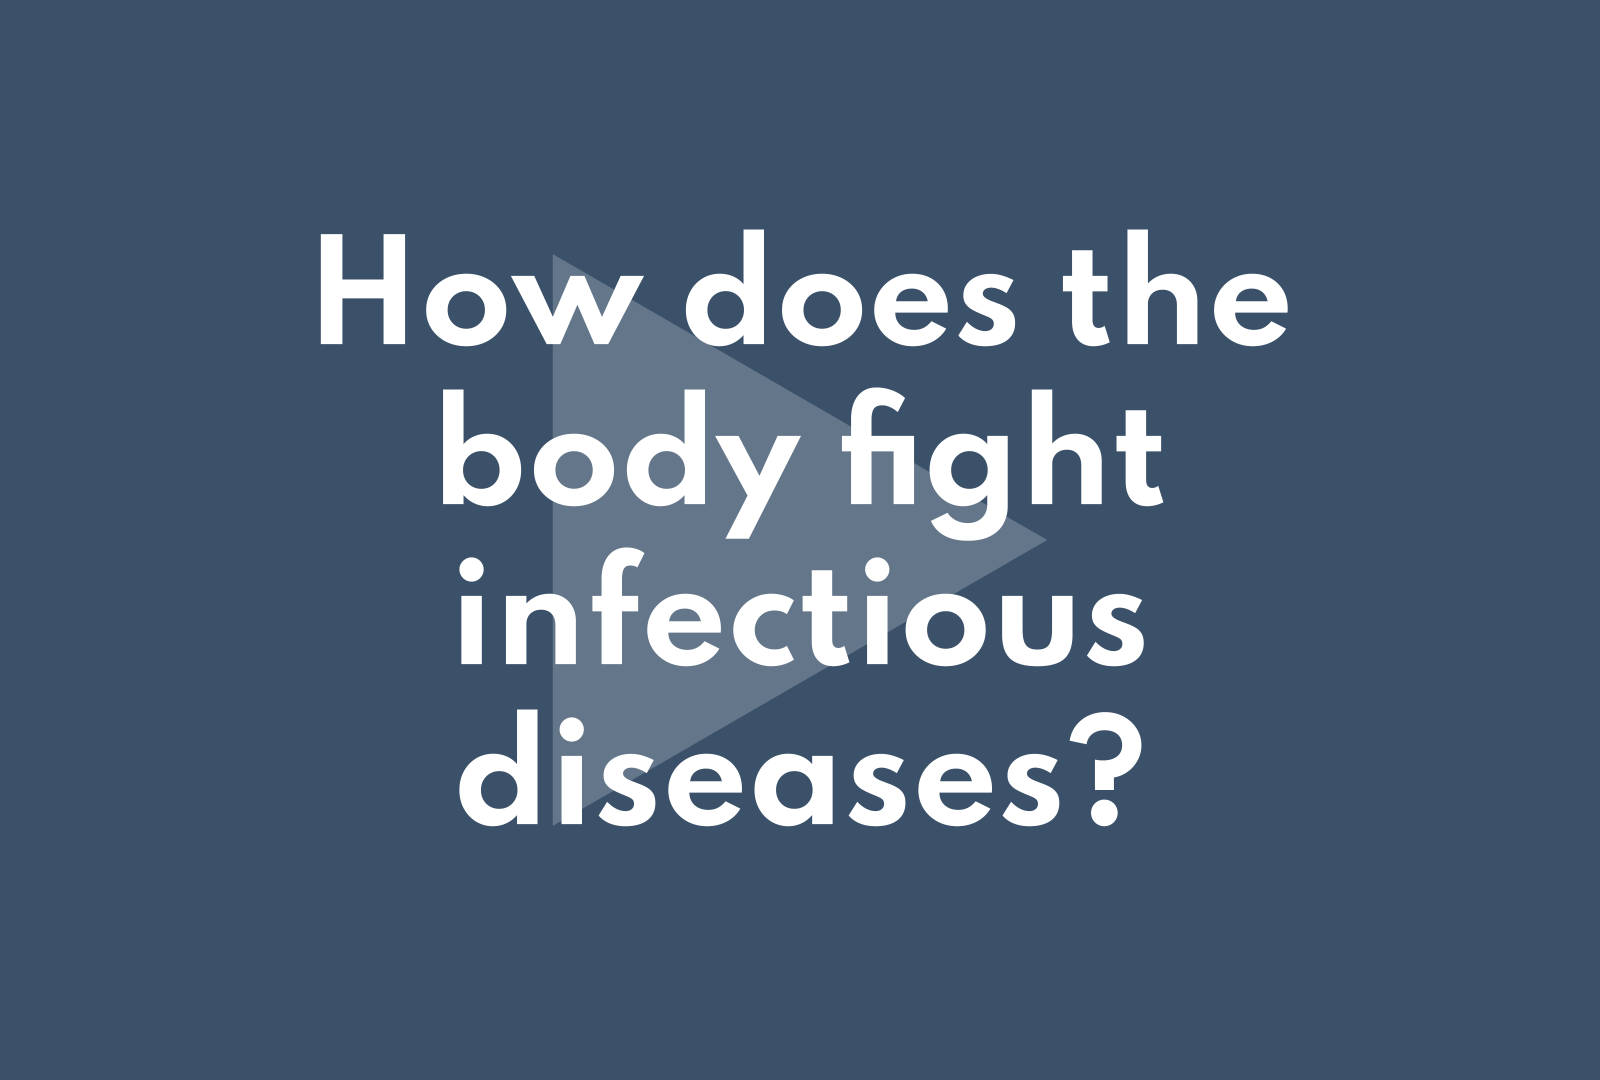 How does the body fight infectious diseases?